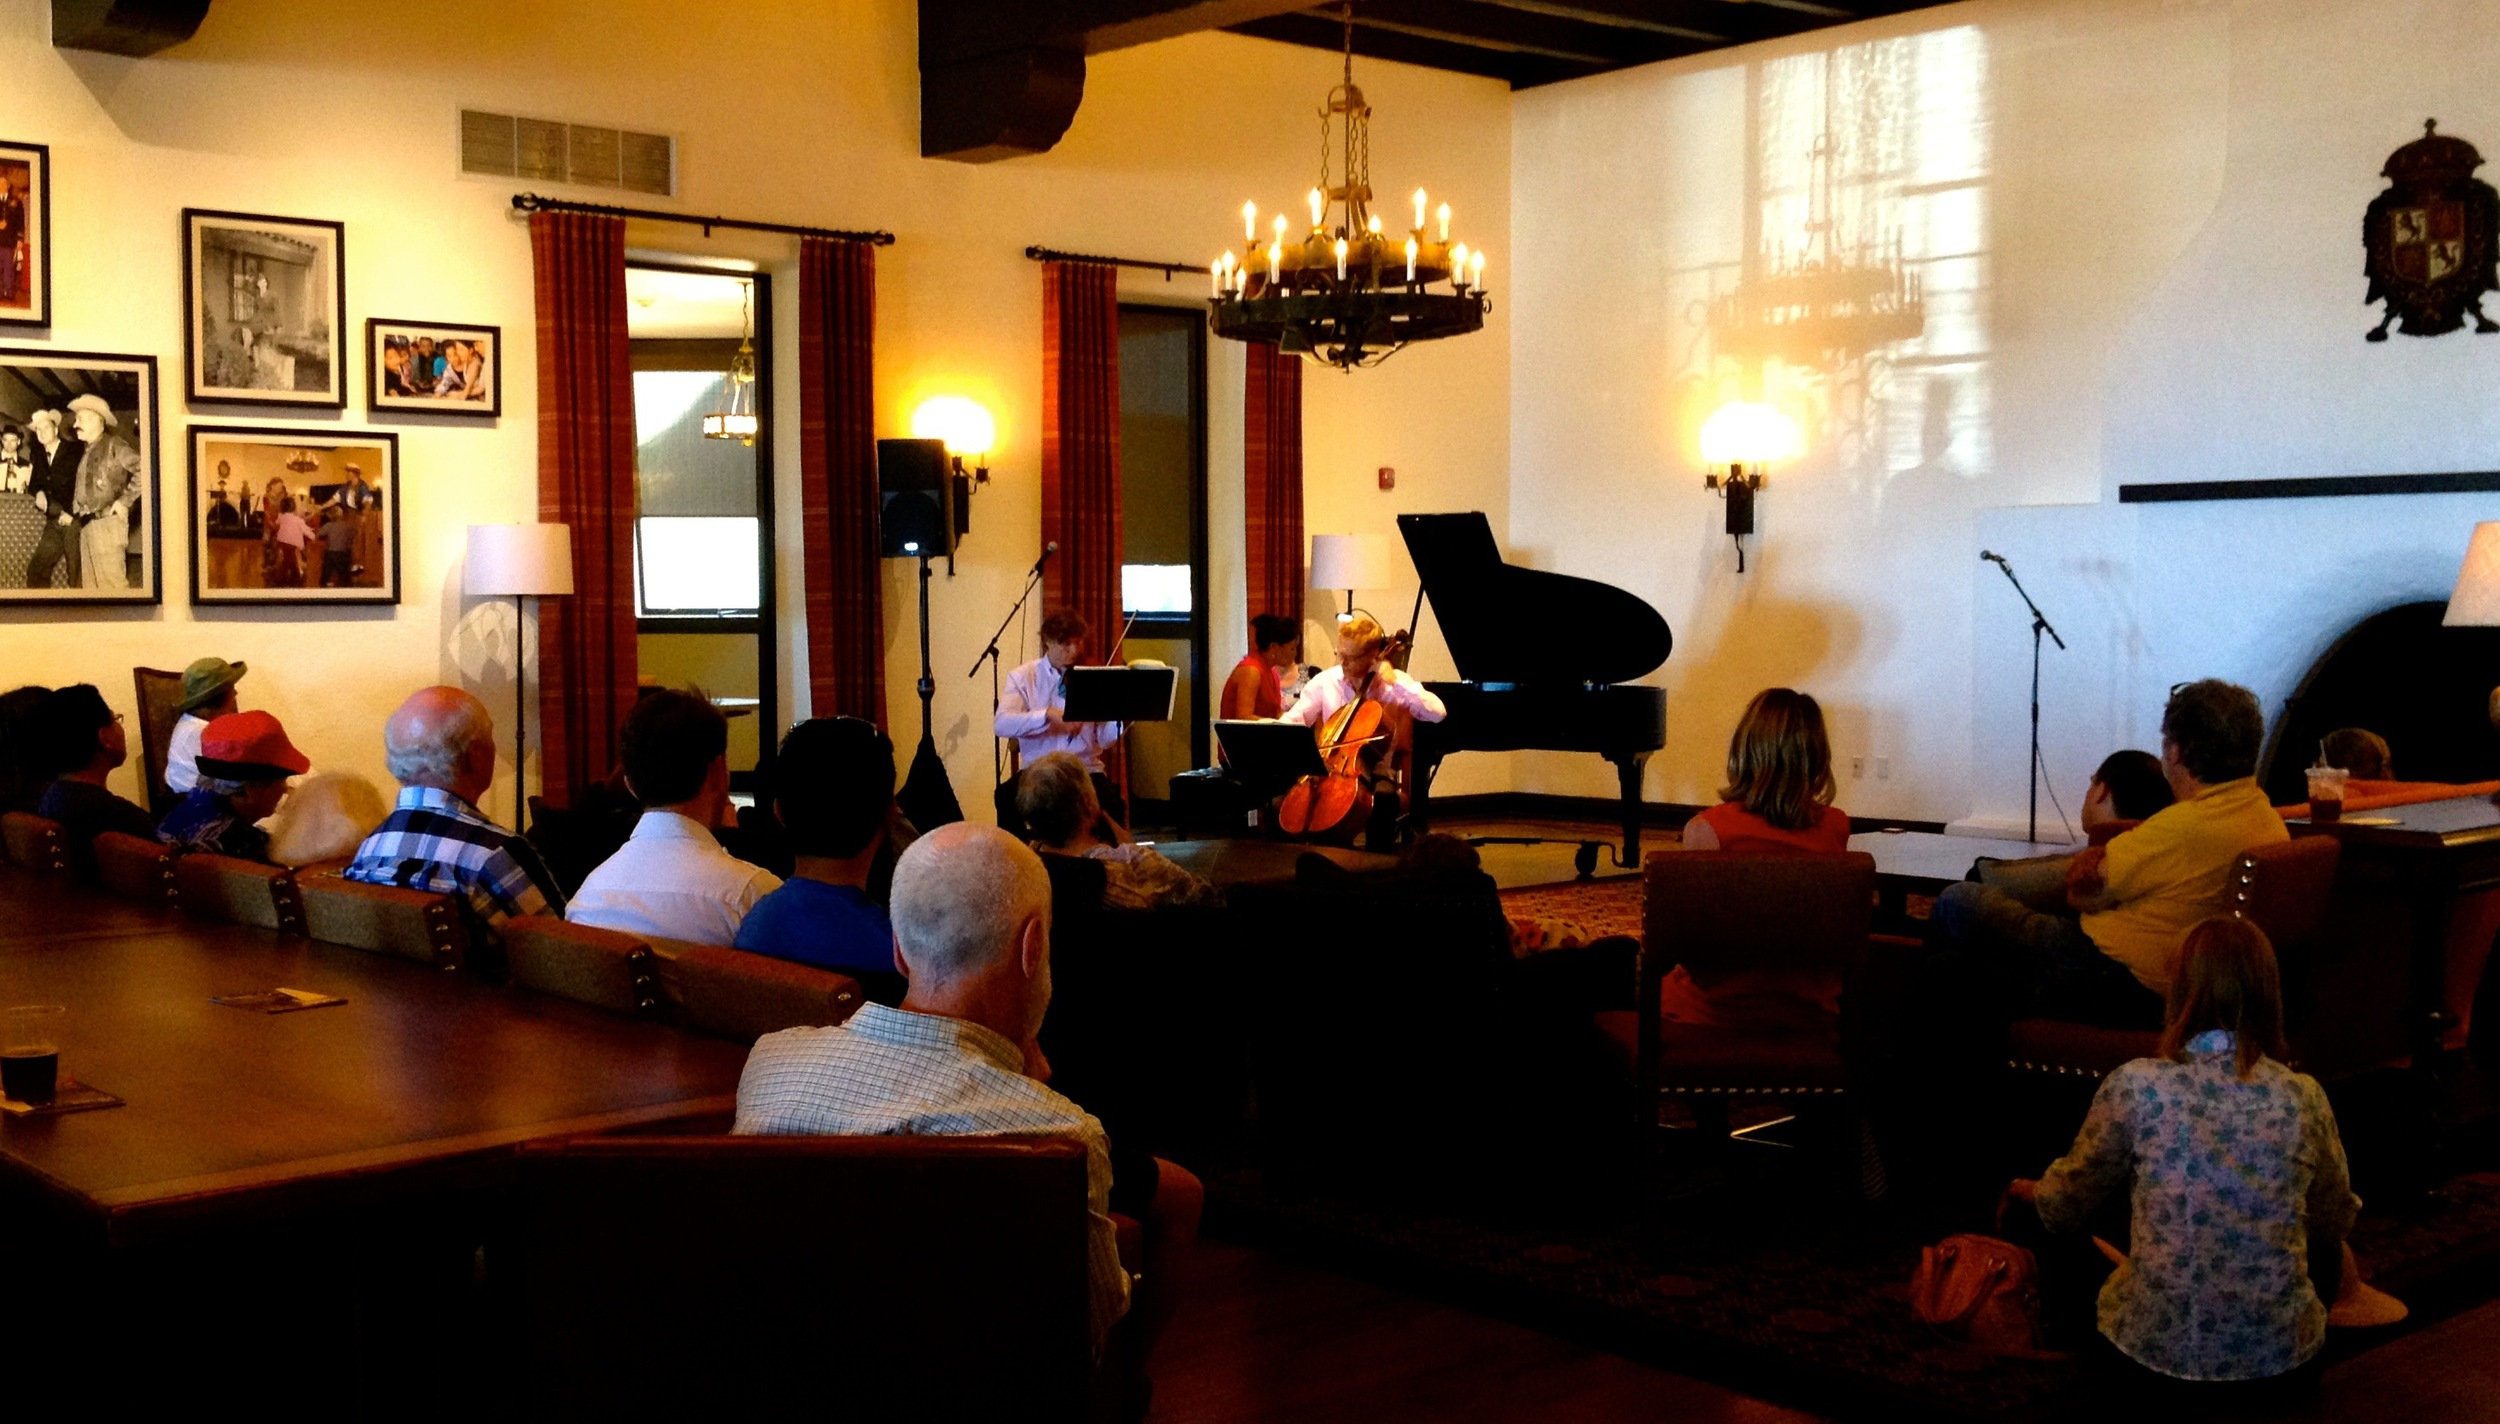 A most warm, welcome and captivated audience lounging in chairs , sitting on the floors and standing int he back listening to Piazzolla and Beethoven. A truly inspiring and gratifying experience!